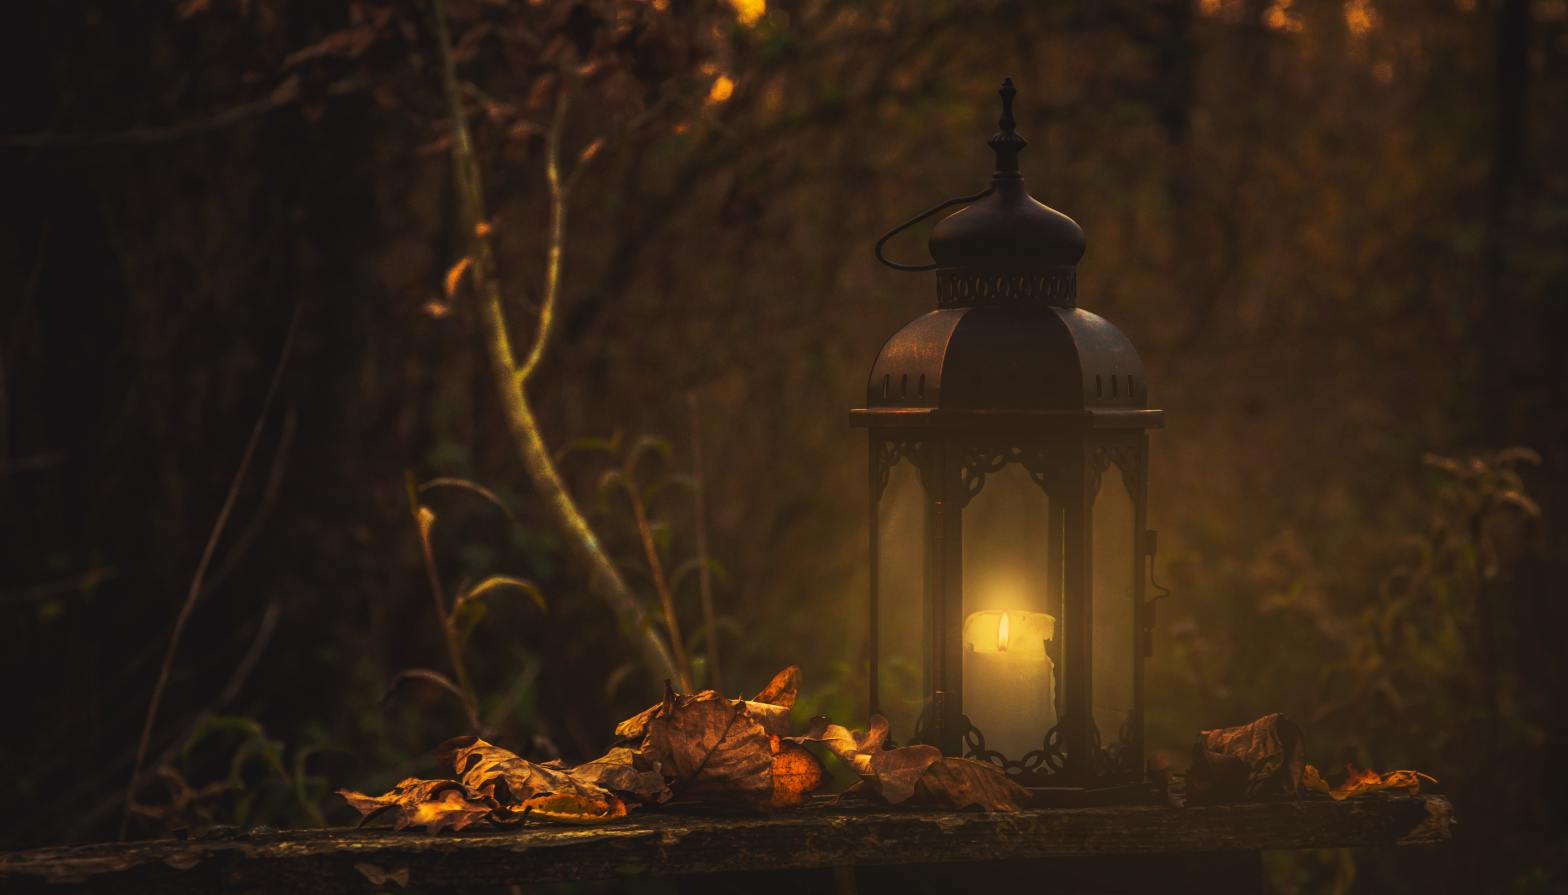 photo of lantern in a spooky fall setting